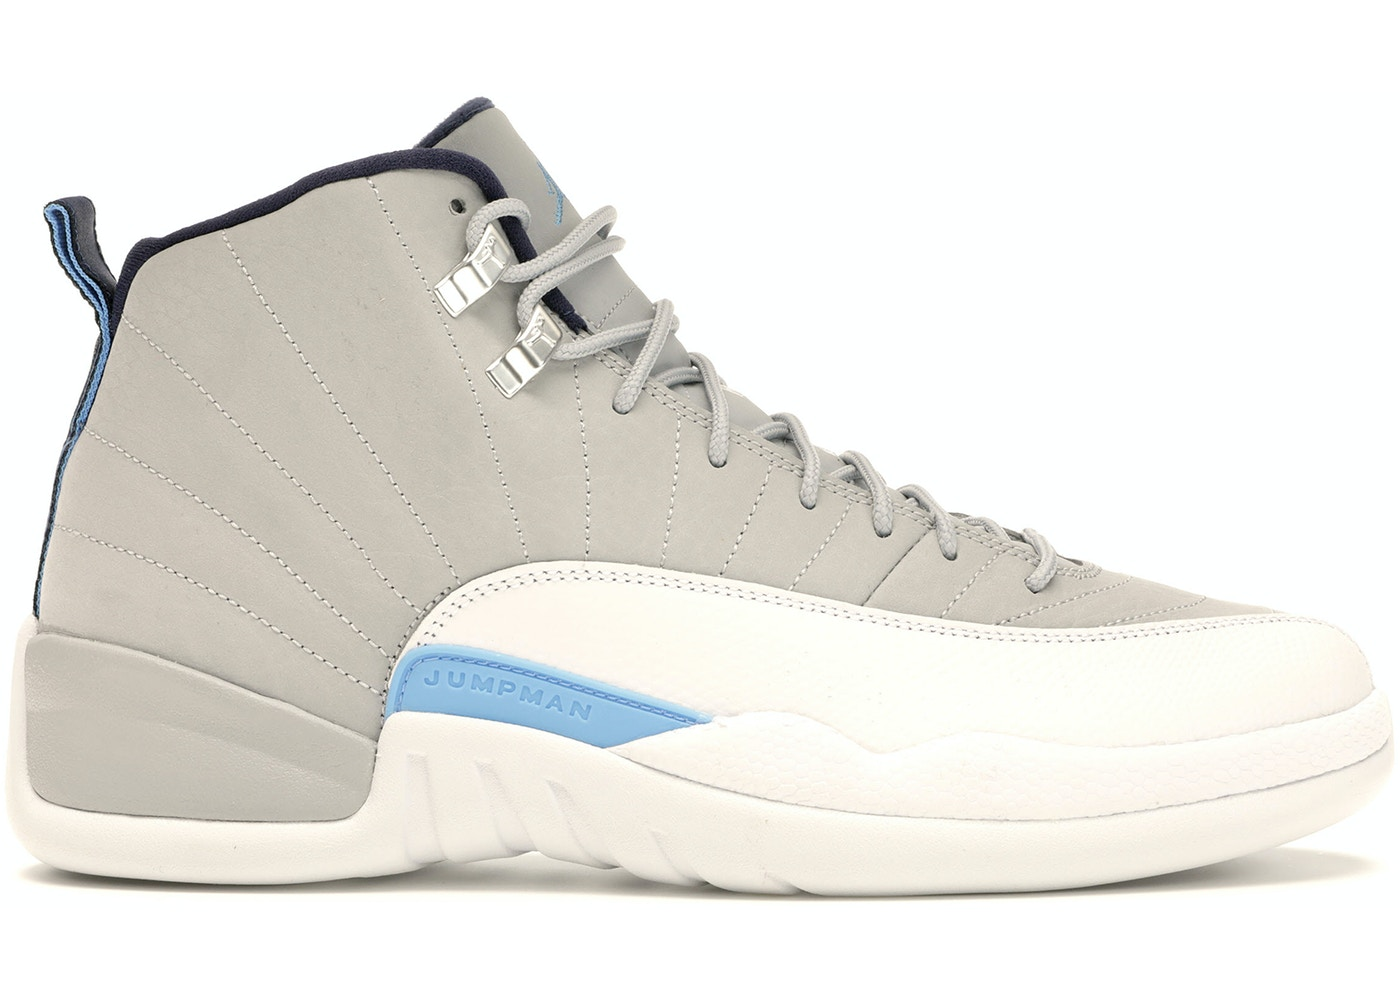 online store 7eed0 ad1c6 Jordan 12 Retro Grey University Blue